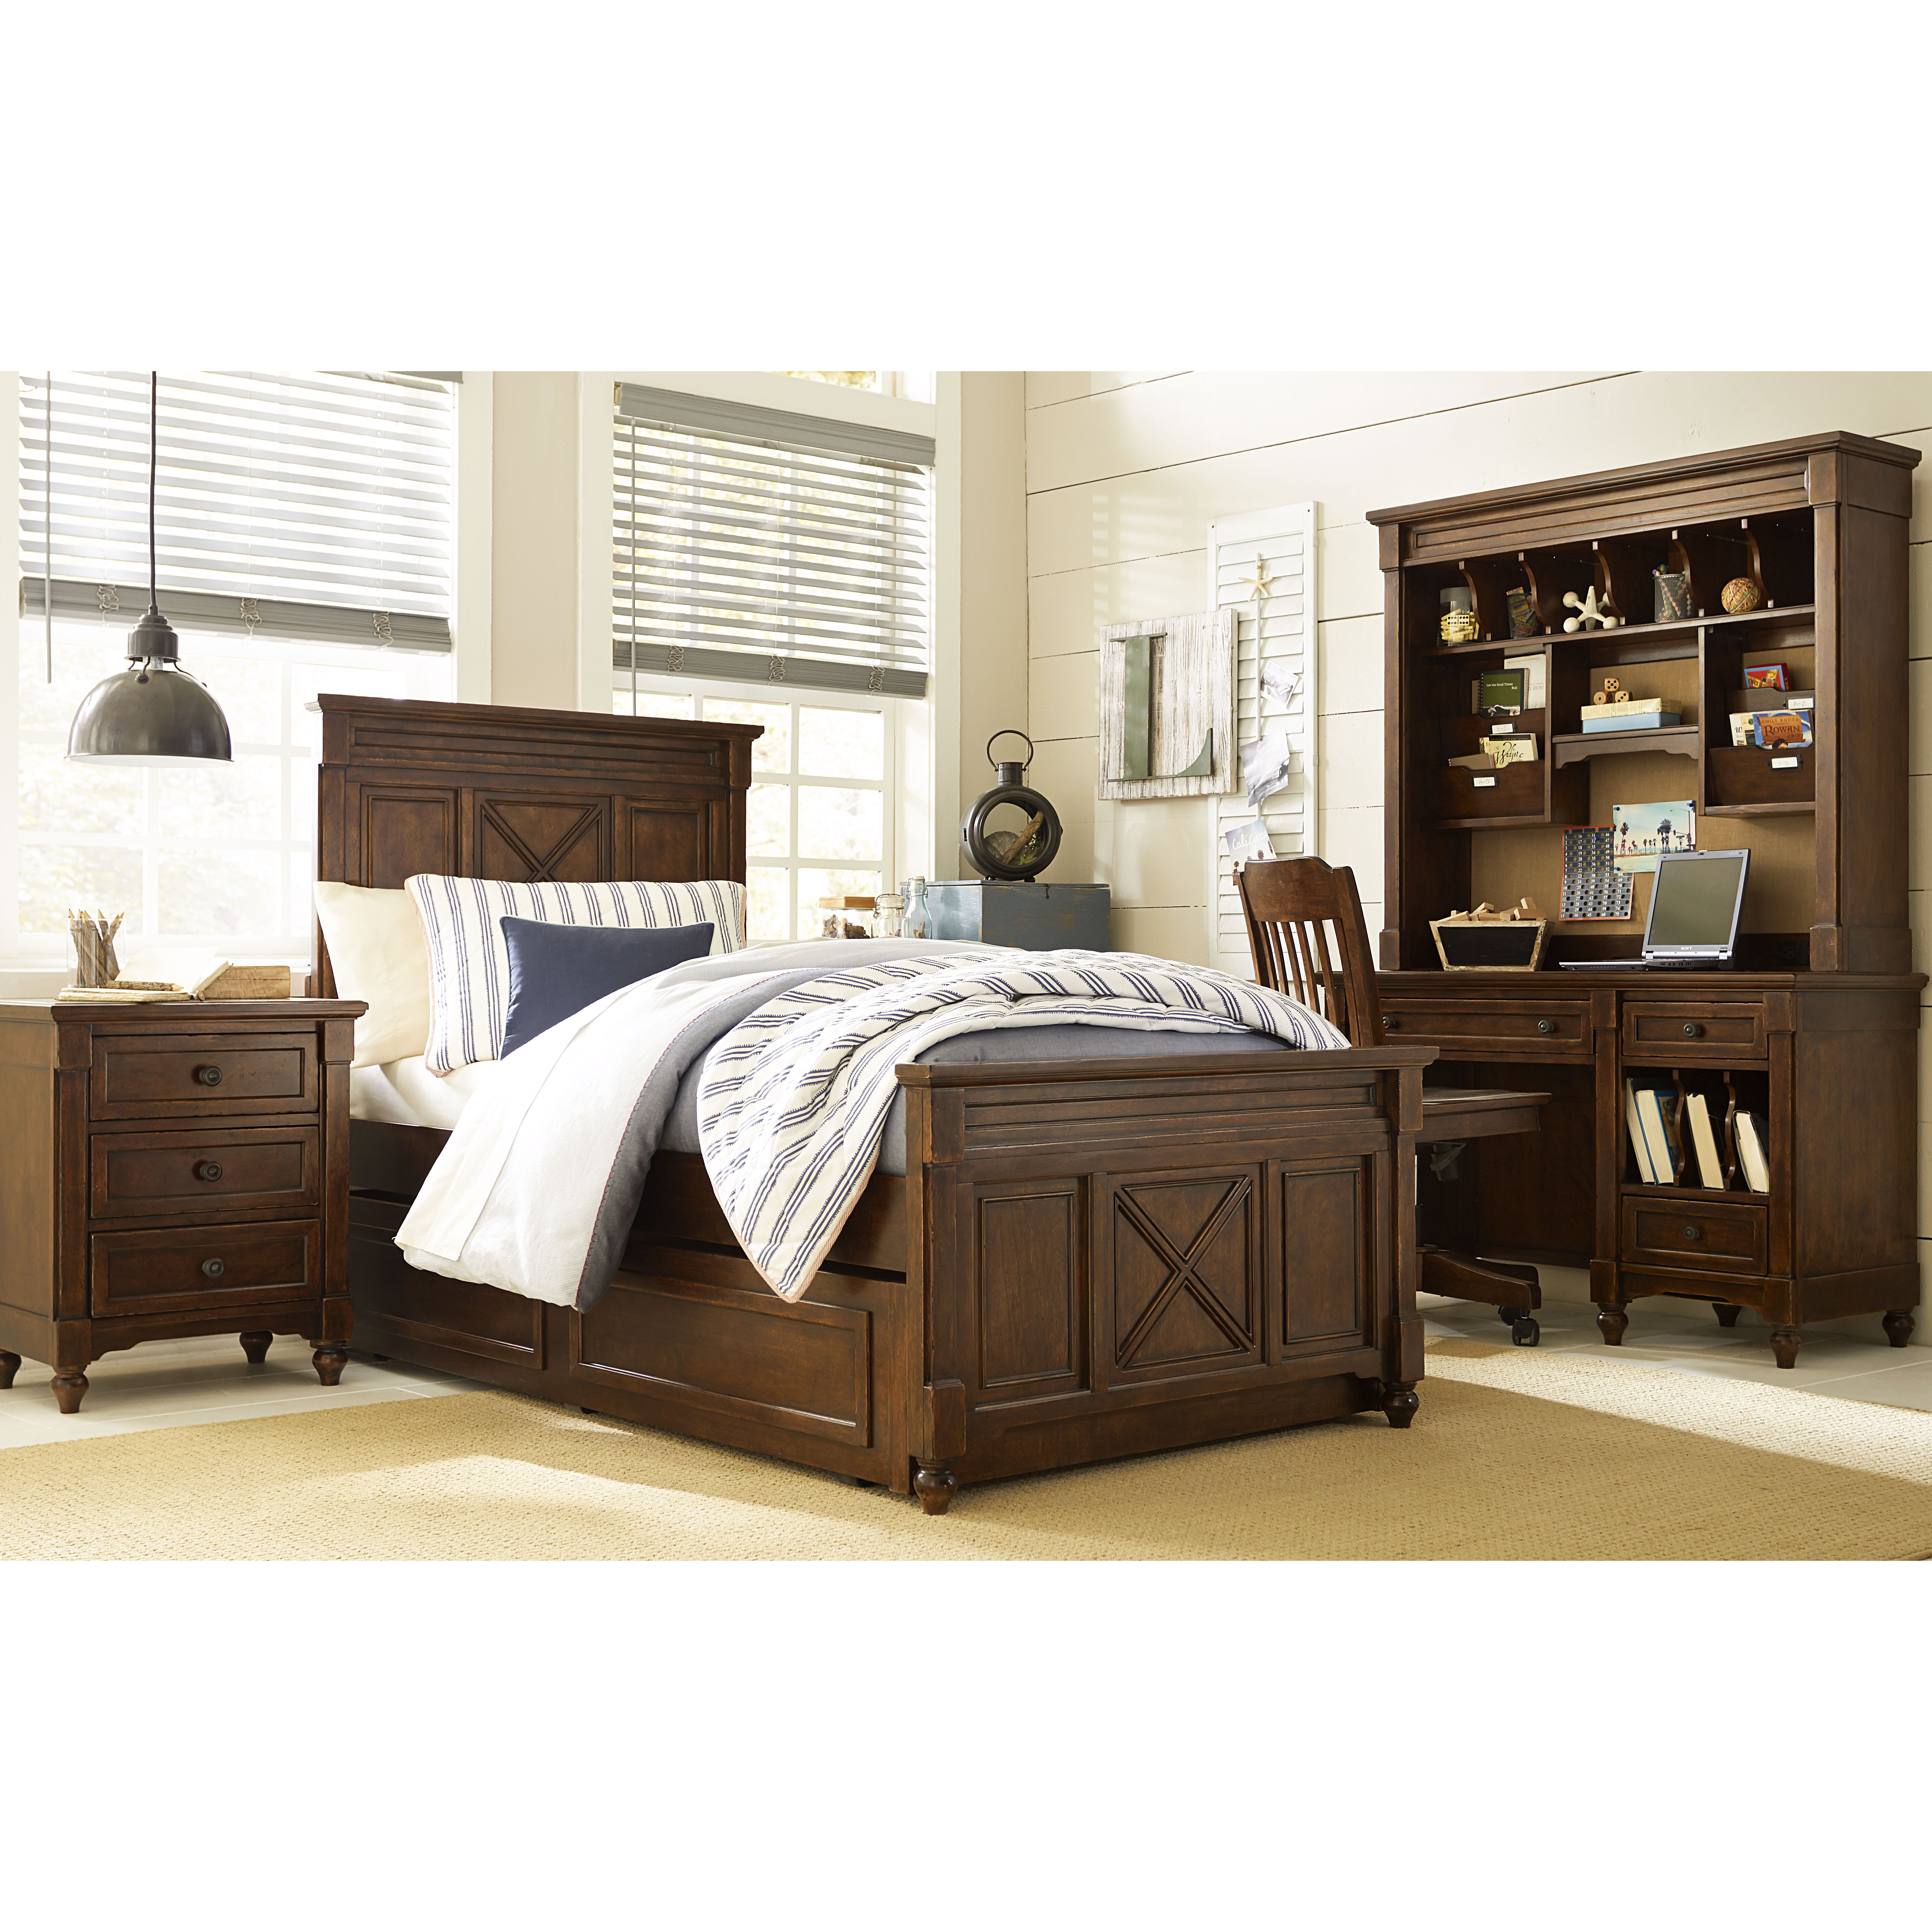 Lc kids big sur by wendy bellissimo twin panel for Large bedroom furniture sets